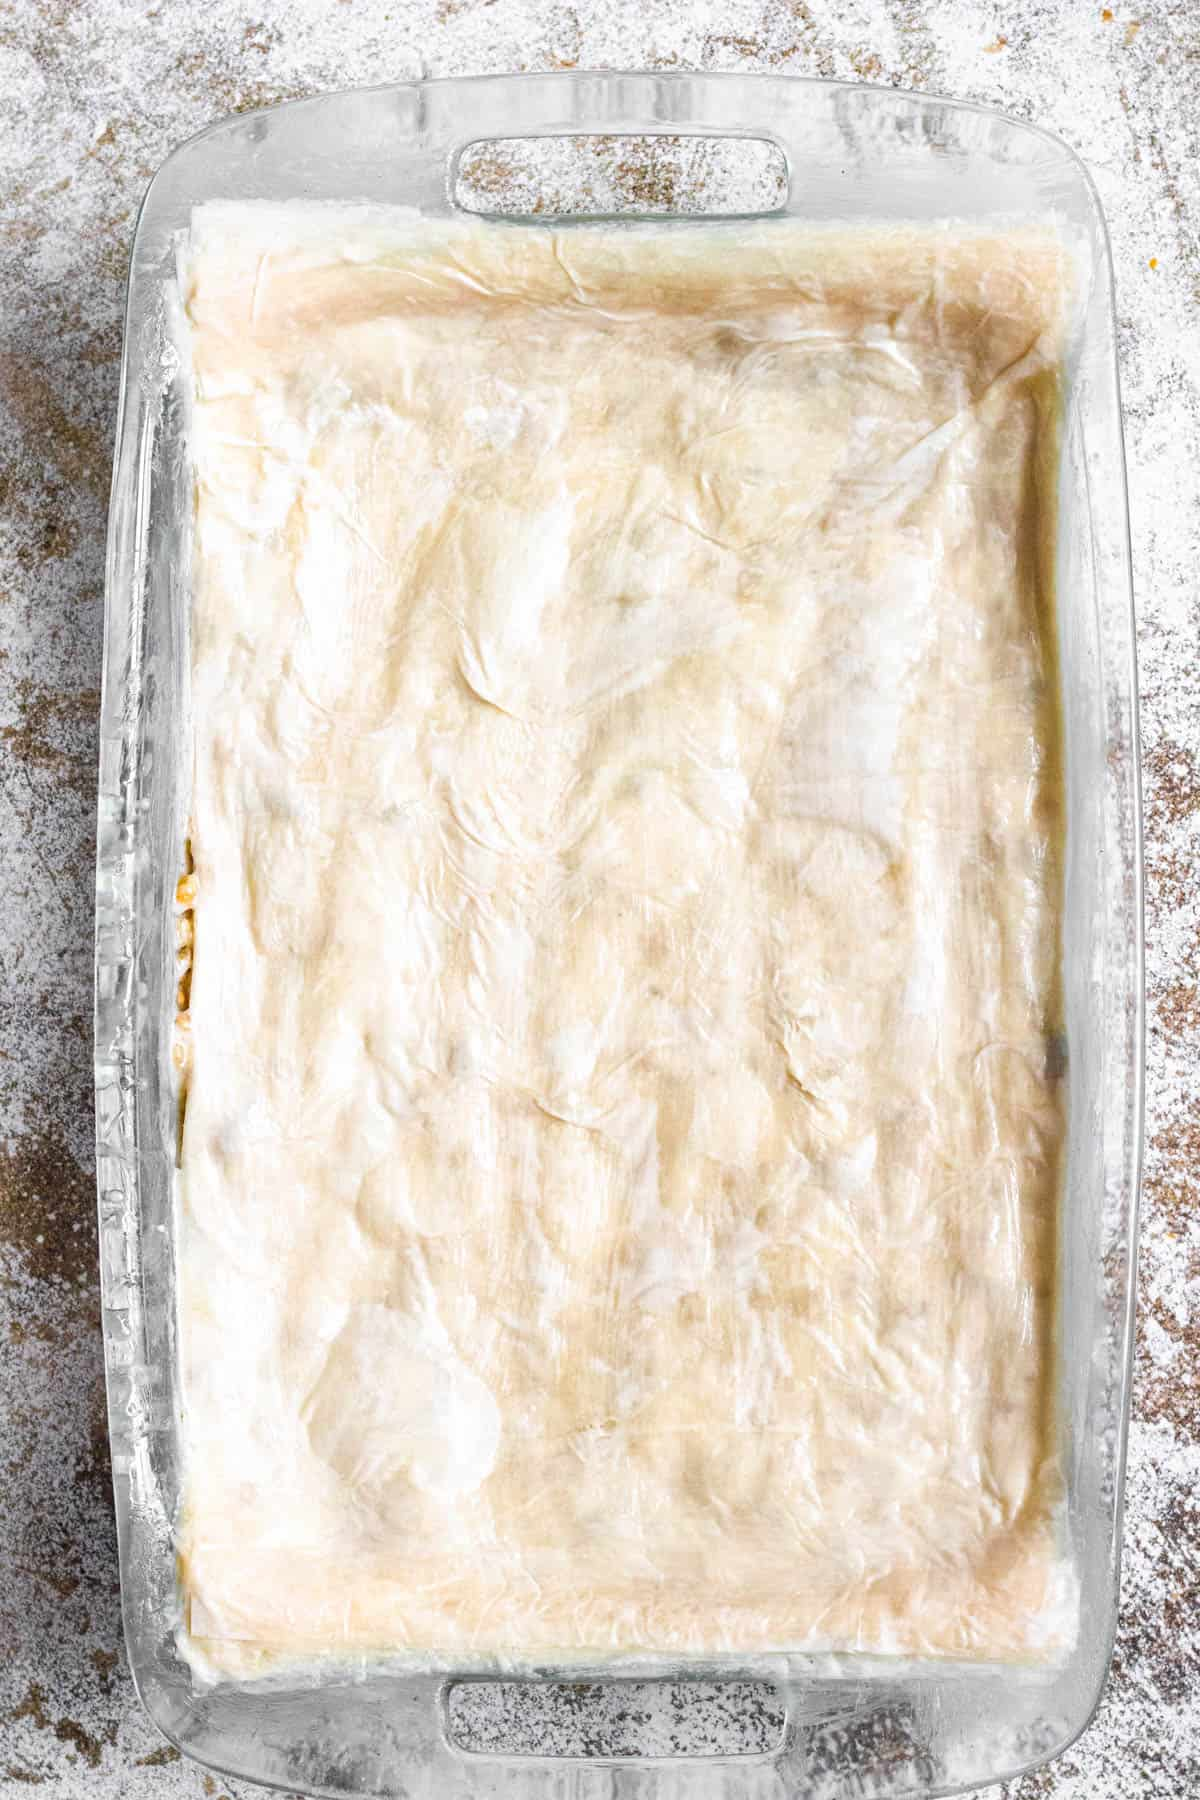 9x13 pan with layers of phyllo dough over the nut mixture